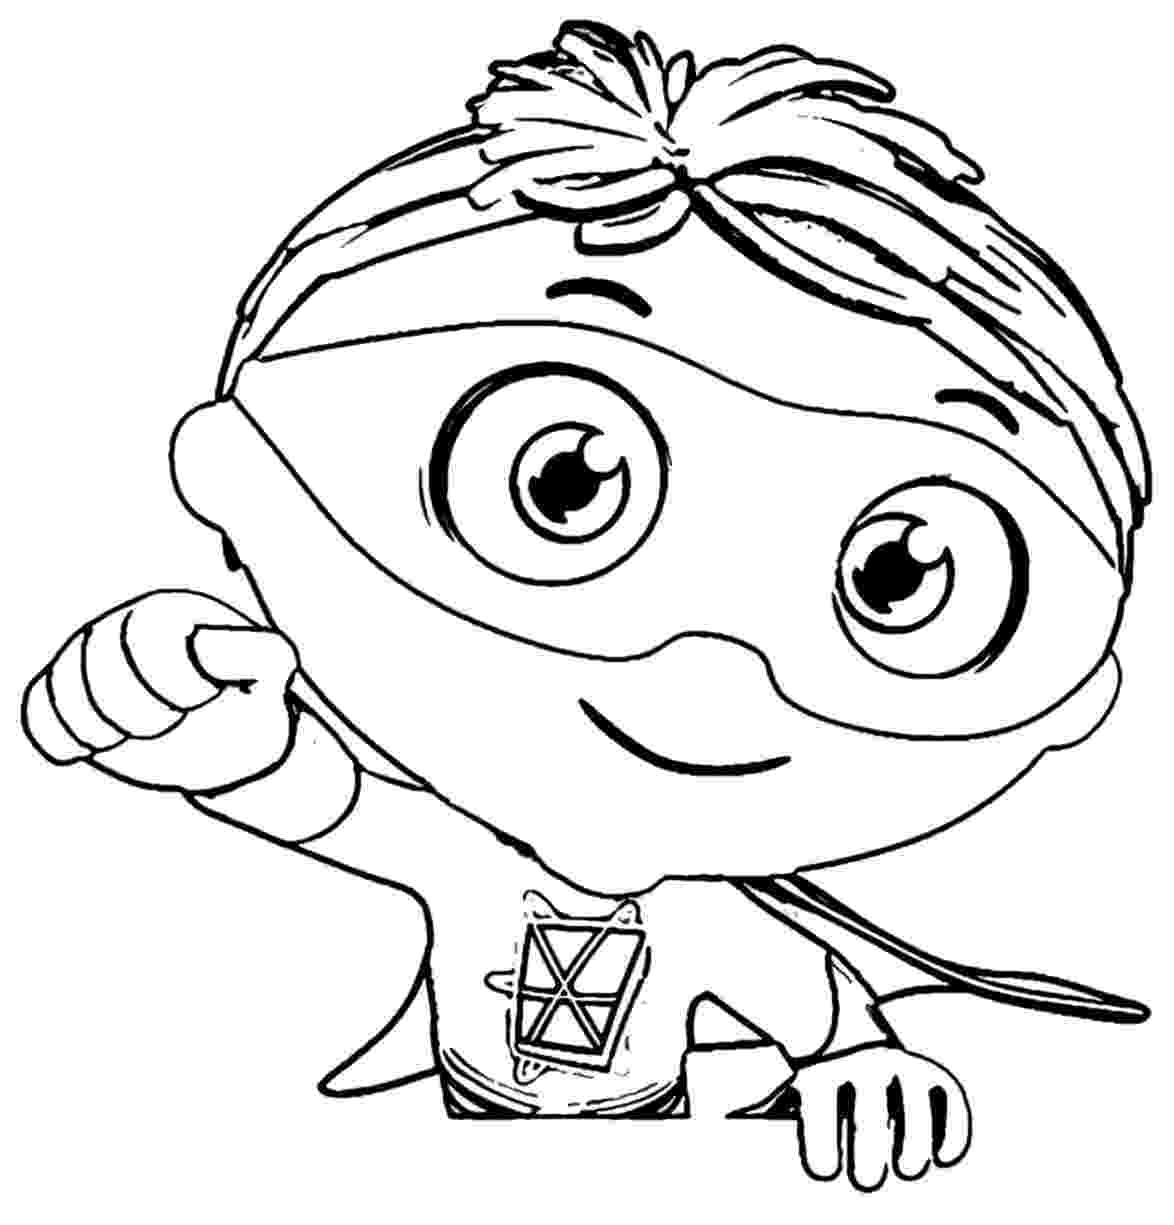 super colouring pages super why coloring pages best coloring pages for kids colouring super pages 1 1